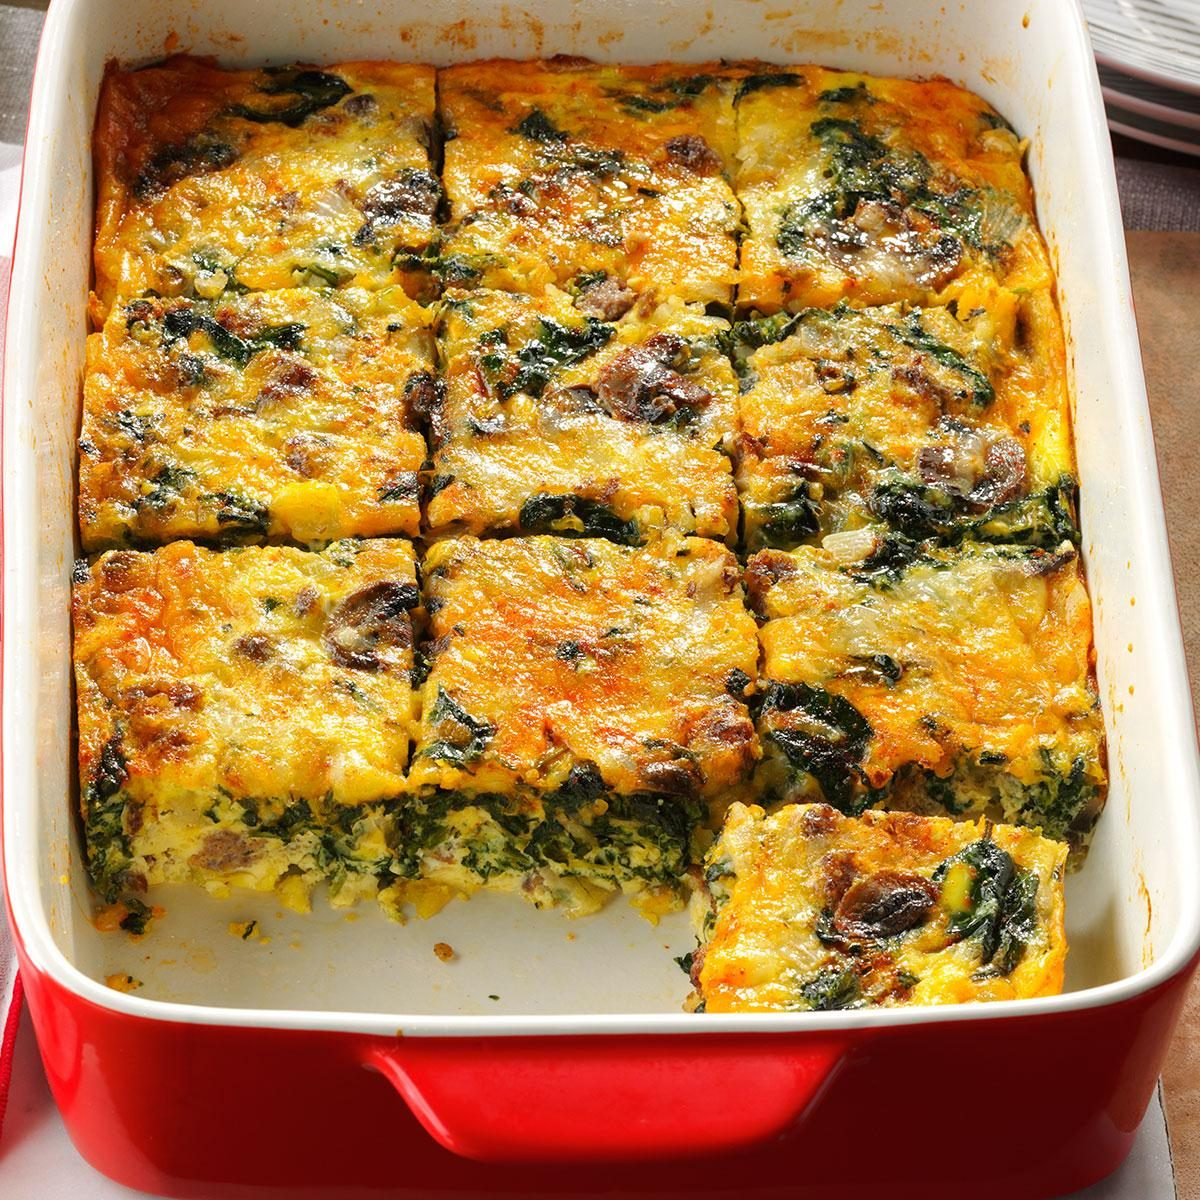 Recipes For Egg Bake Dishes: Eggs Florentine Casserole Recipe